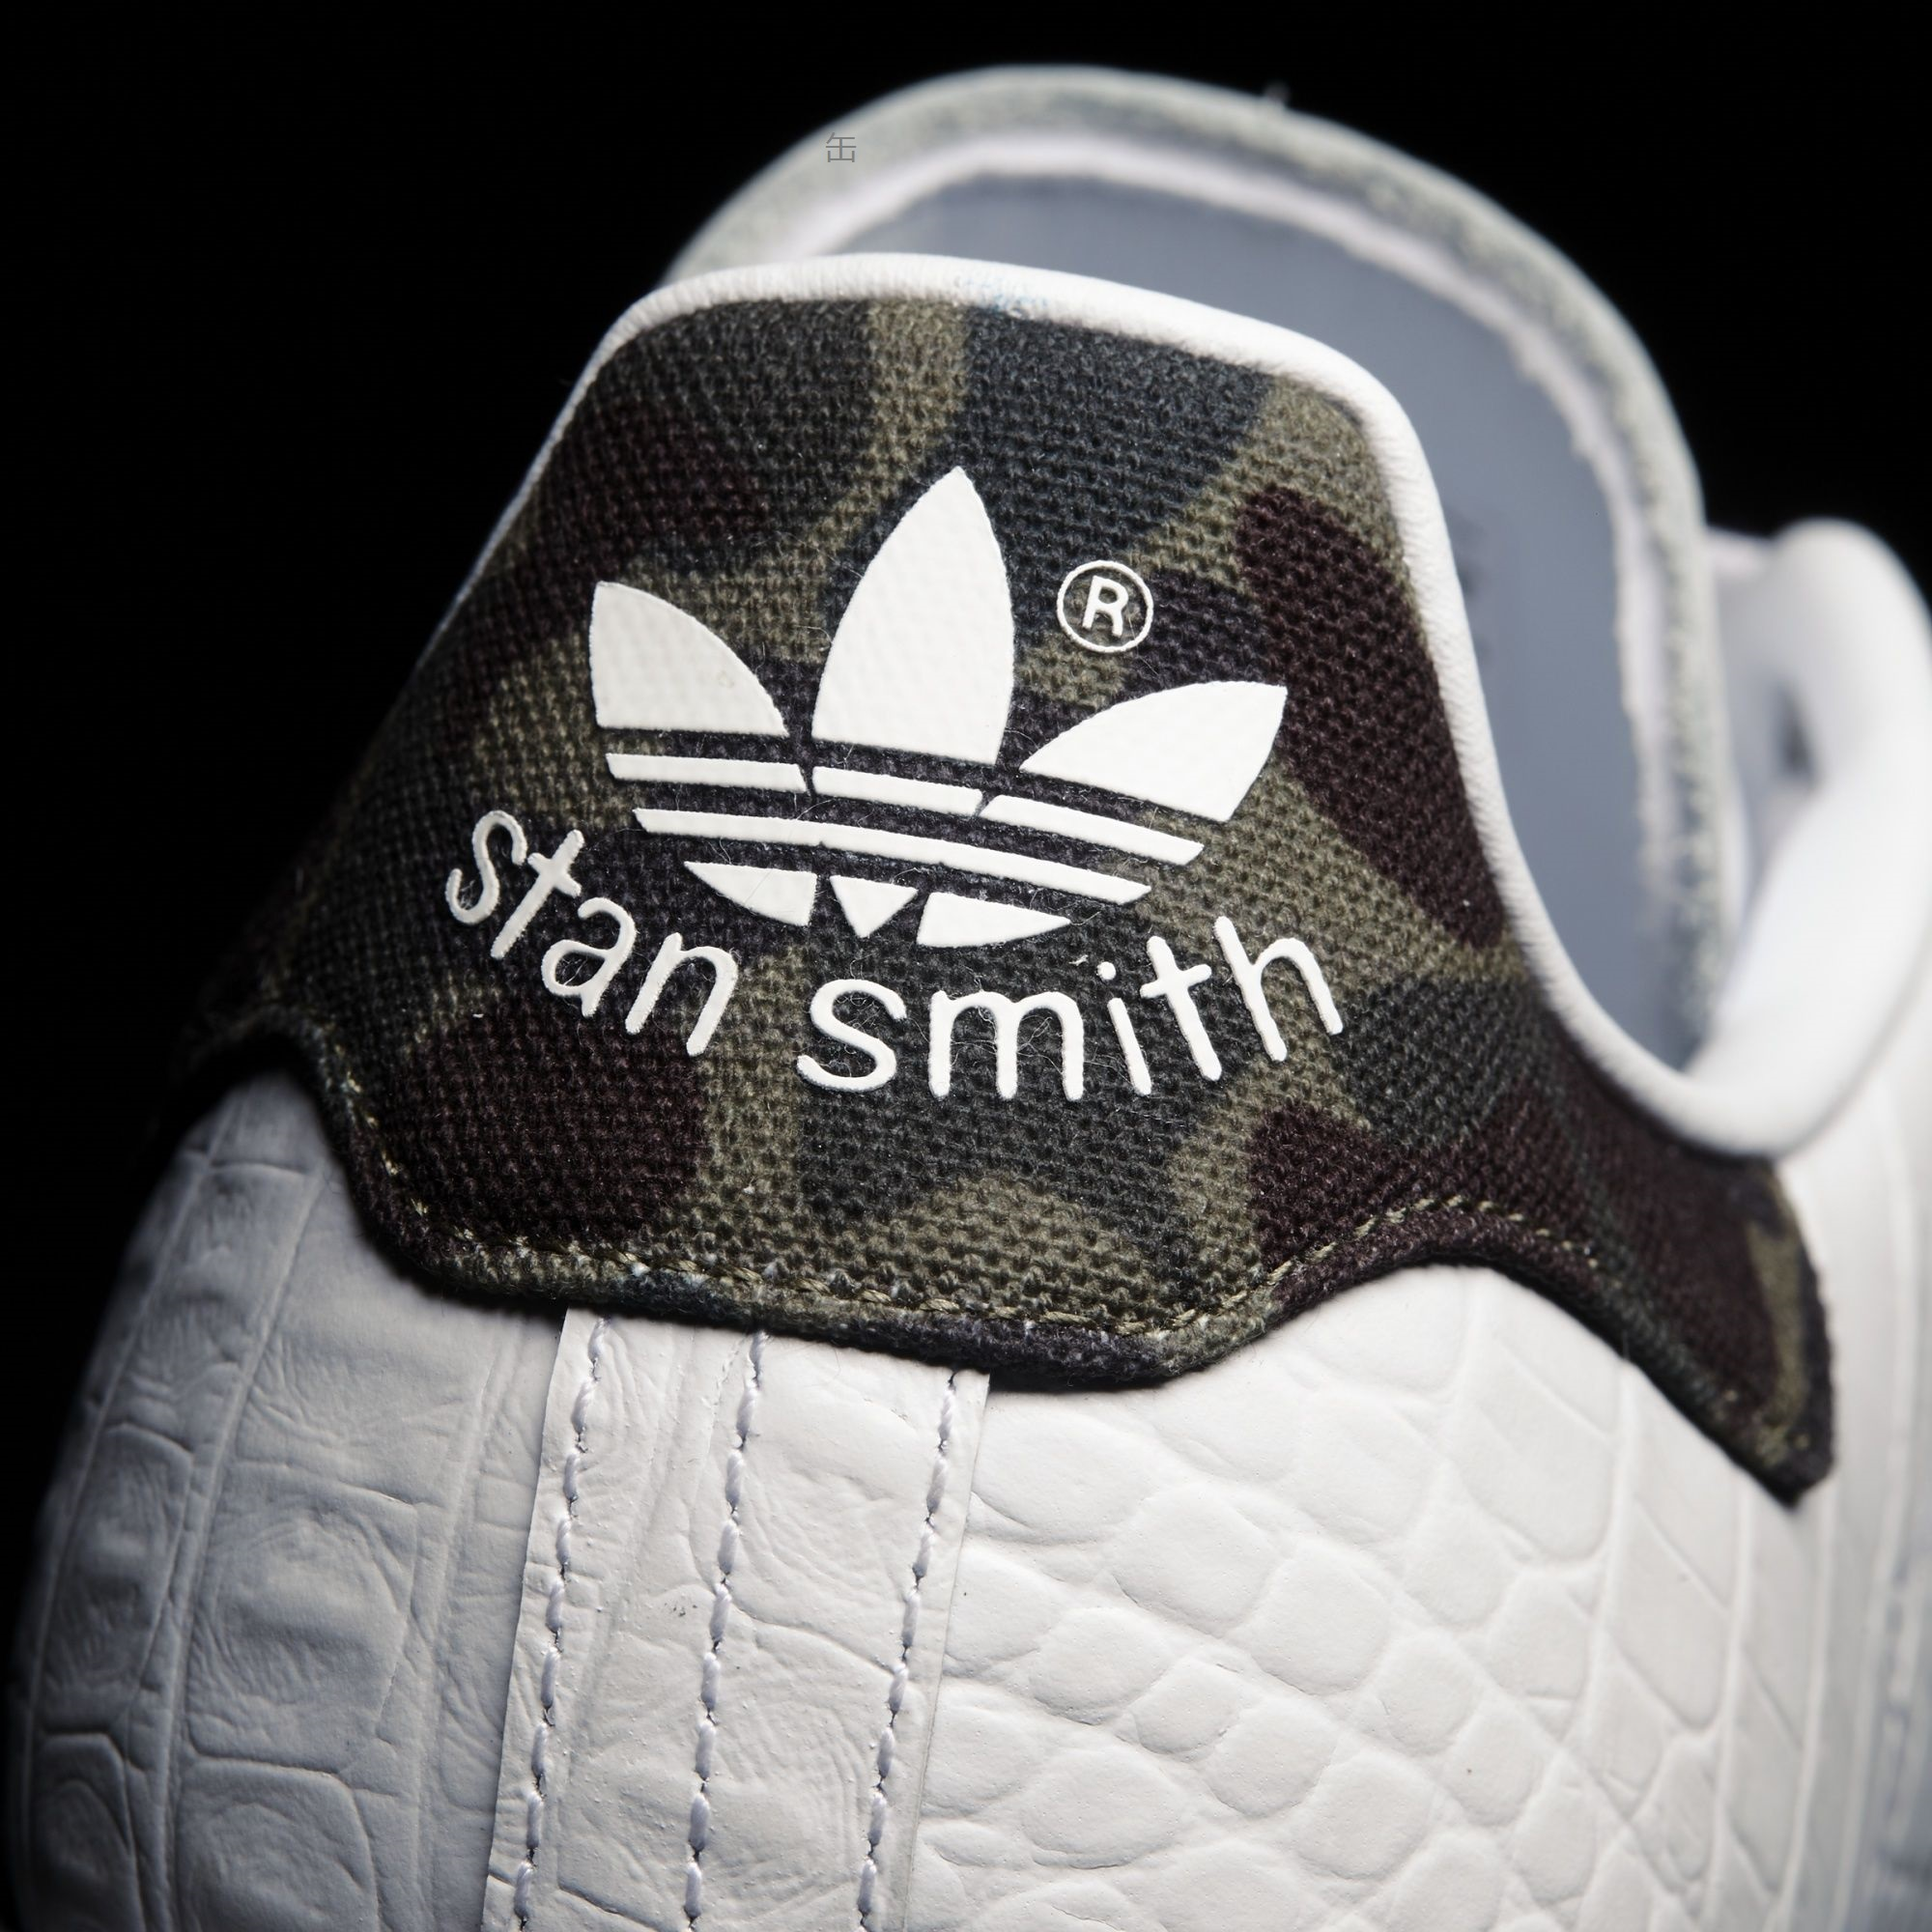 Adidas Originals Stan Smith Croc – Heel